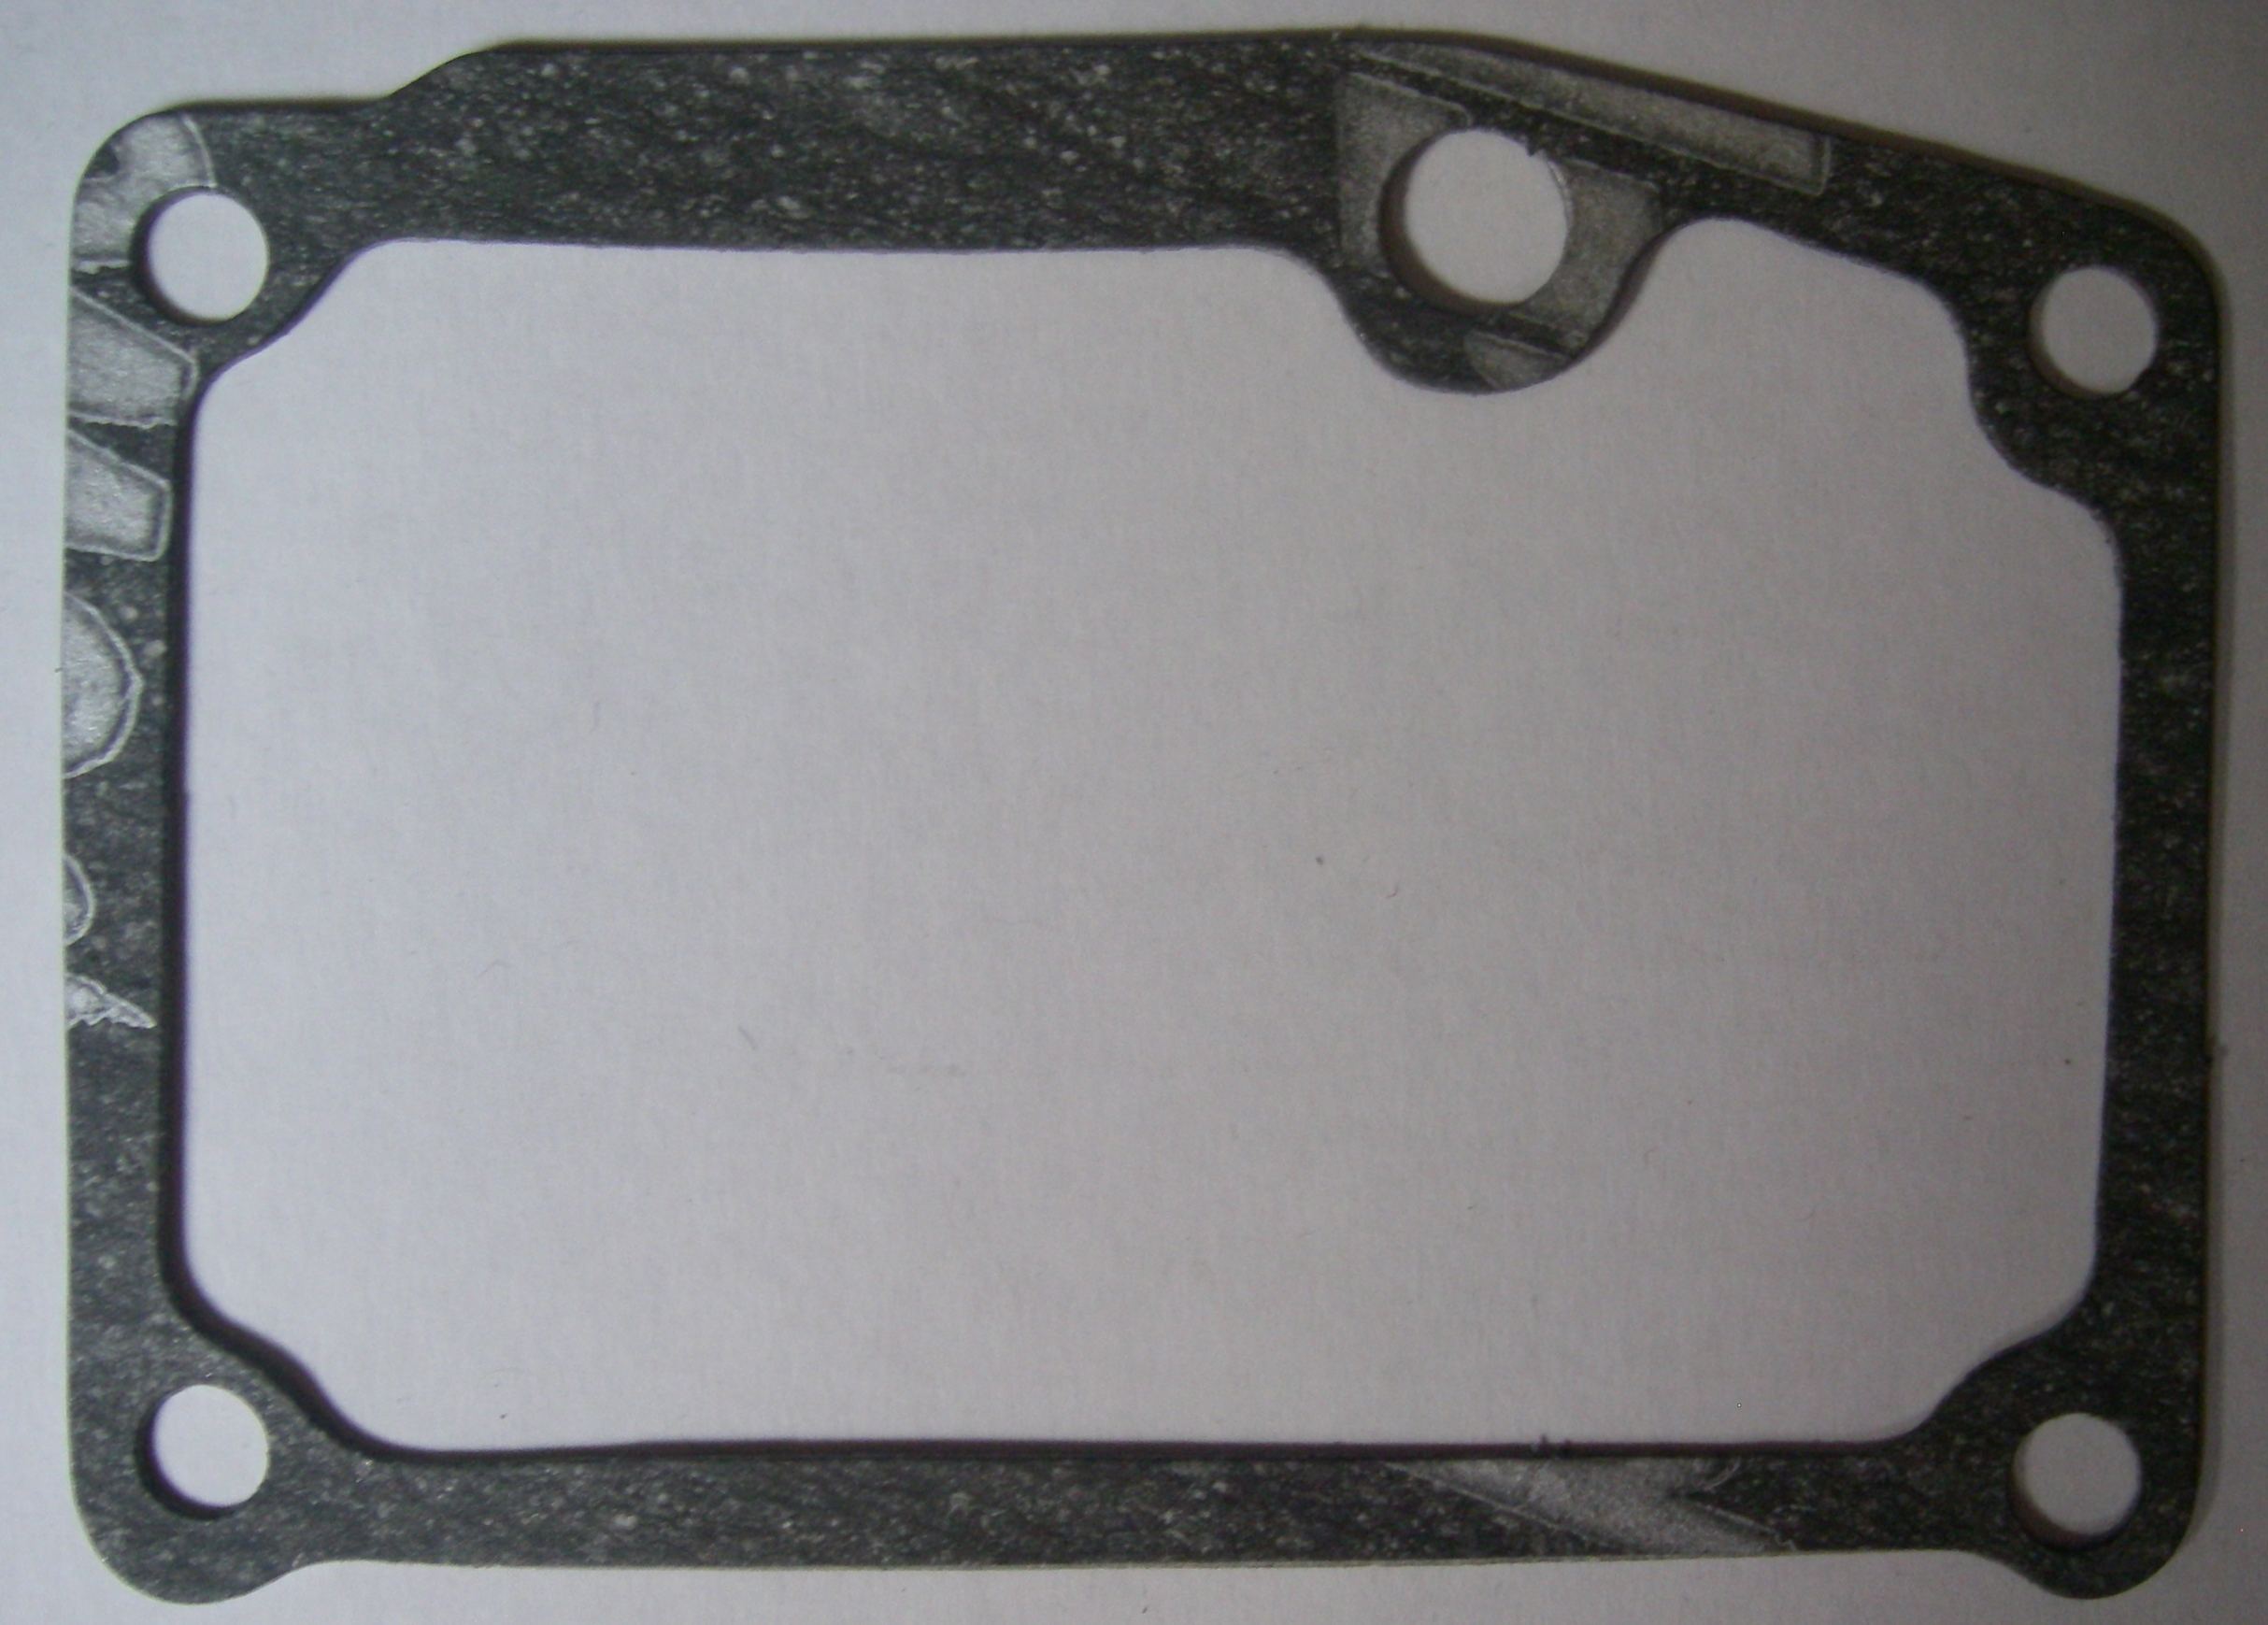 <b>Lister TR1/TS1 Inspection Door Gasket</b>